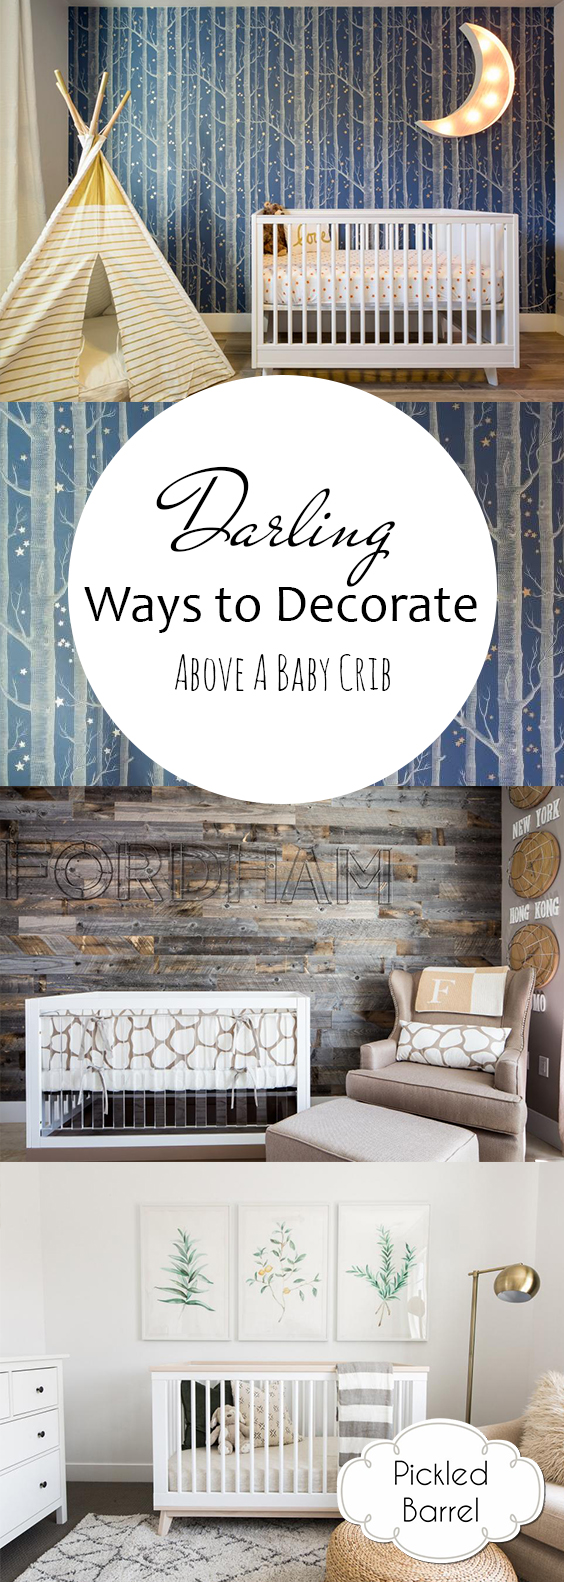 How to Decorate Above a Crib, Decorating Above A Crib, Nursery Decor, DIY Nursery Decor, How to Decorate A Nursery, Decorating A Nursery, Baby's Room